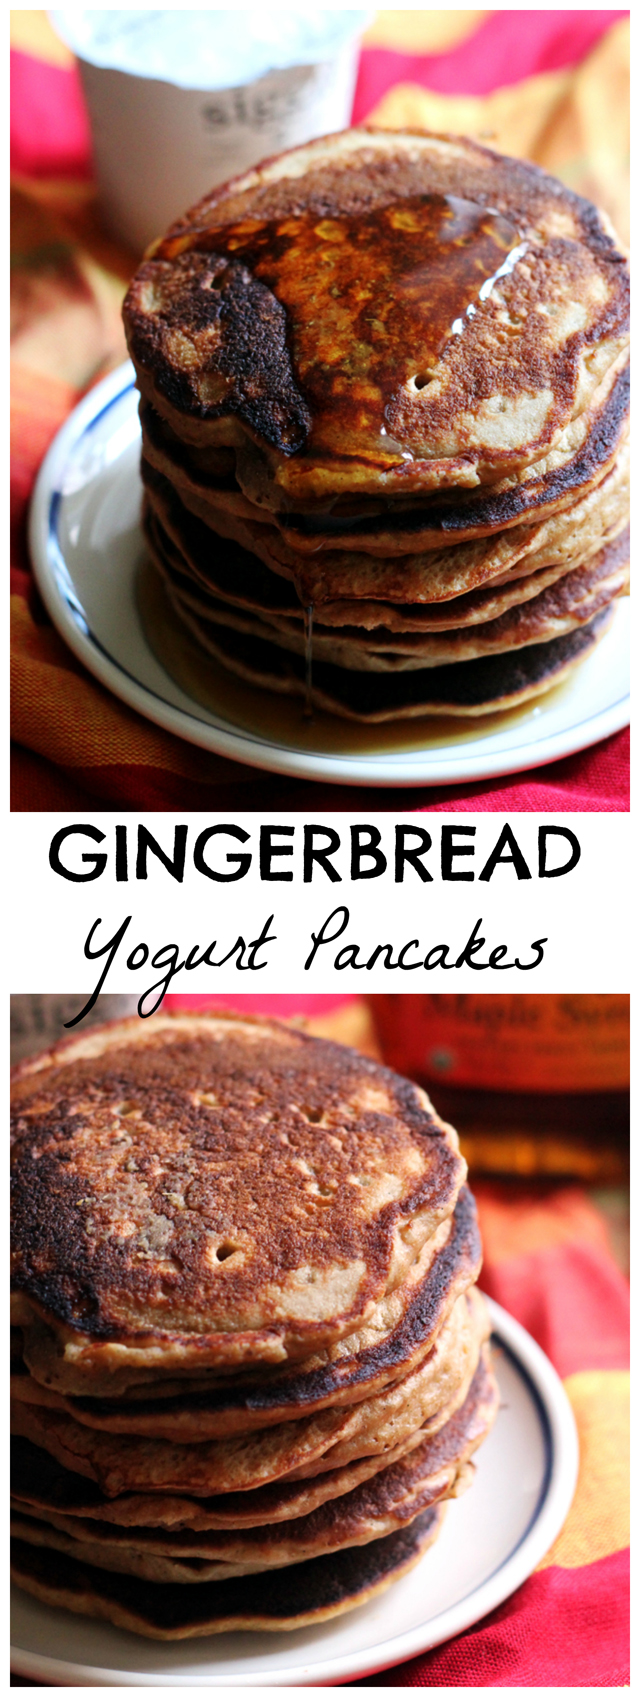 gingerbread yogurt pancakes